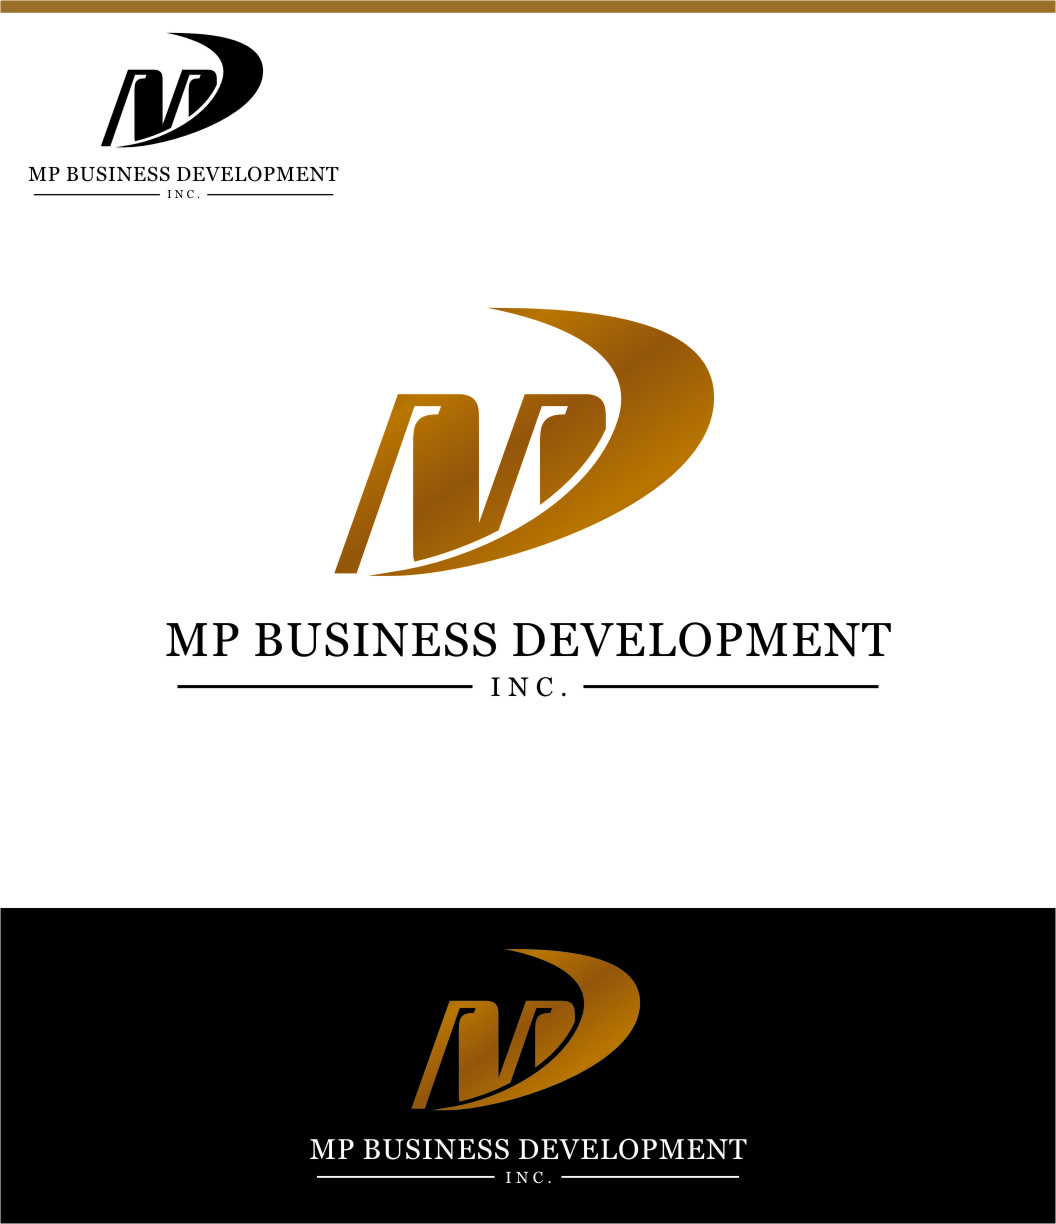 Logo Design by RasYa Muhammad Athaya - Entry No. 138 in the Logo Design Contest MP Business Development Inc. Logo Design.